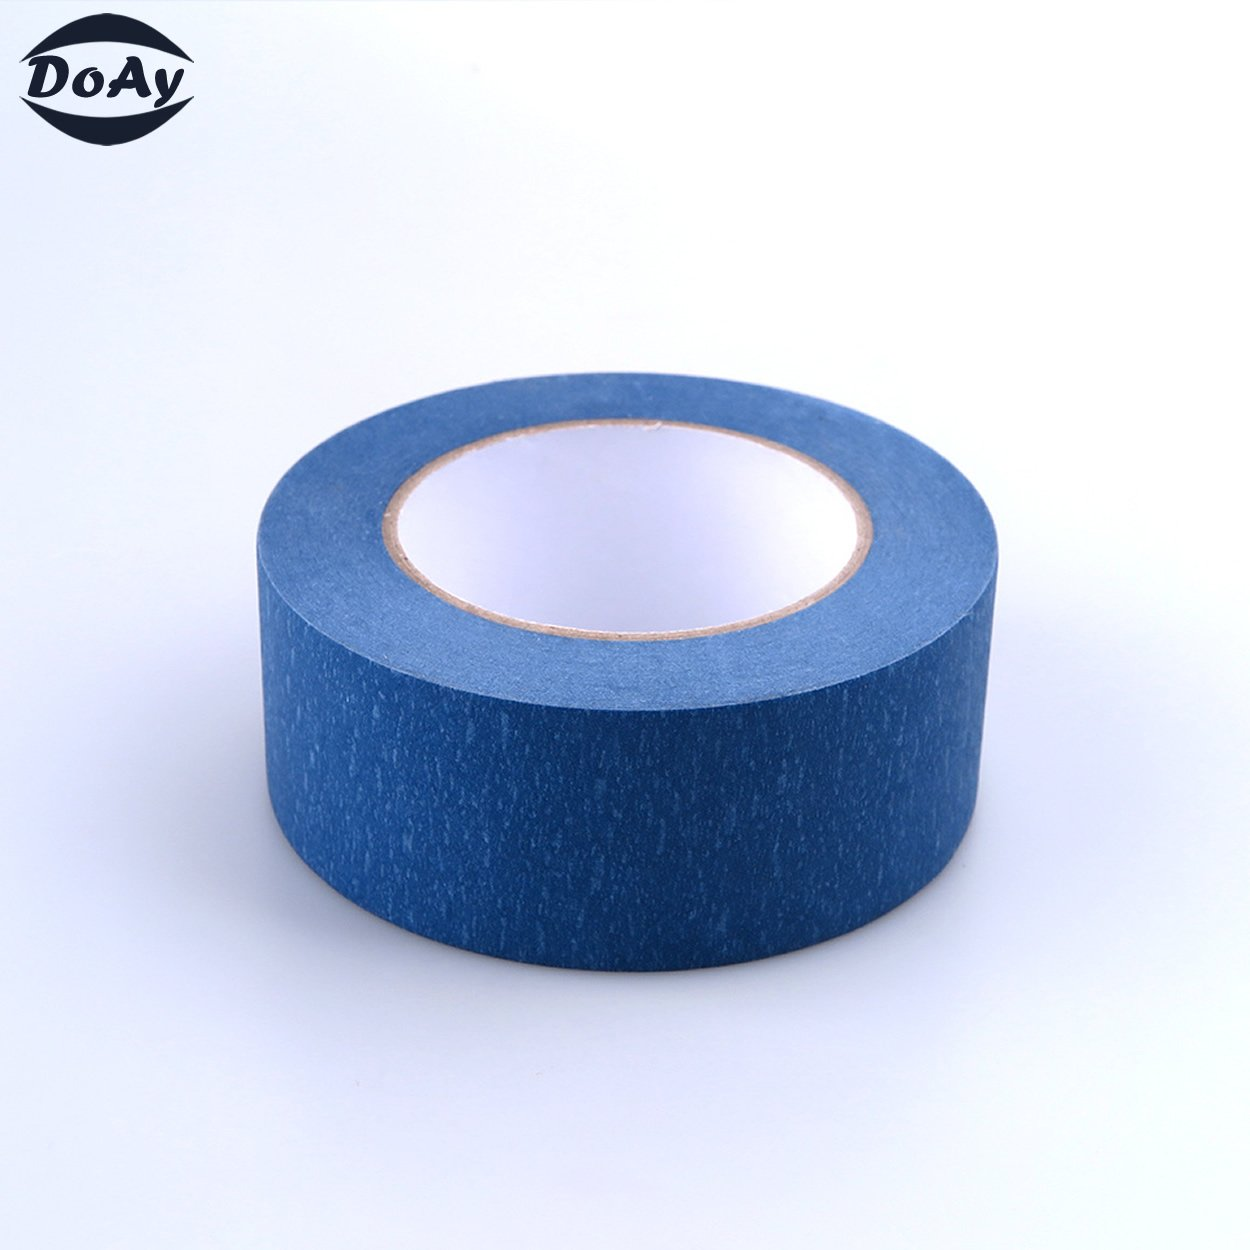 Painters Tape 3pk 2'' x 60 yd | Professional Blue Painters Masking Tape | Easy and Clean Removal | Multi Surface Use | ISO 9001 Worldwide Quality | Leaves No Residue Behind | (48mm .1.88in) (3 Pack) by DoAy (Image #4)